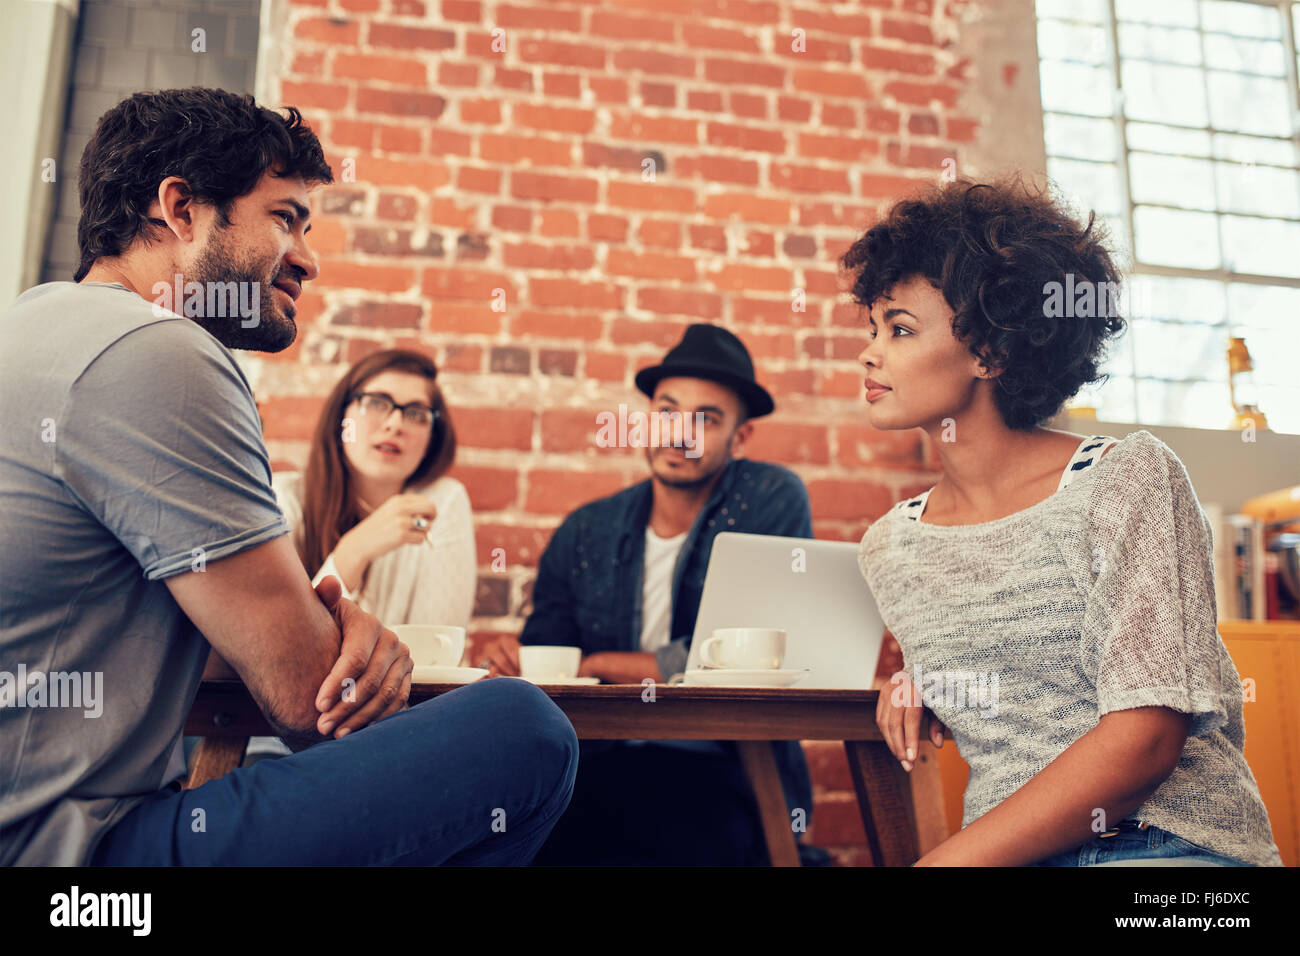 Meeting immagini meeting fotos stock alamy for Cianografie a due piani